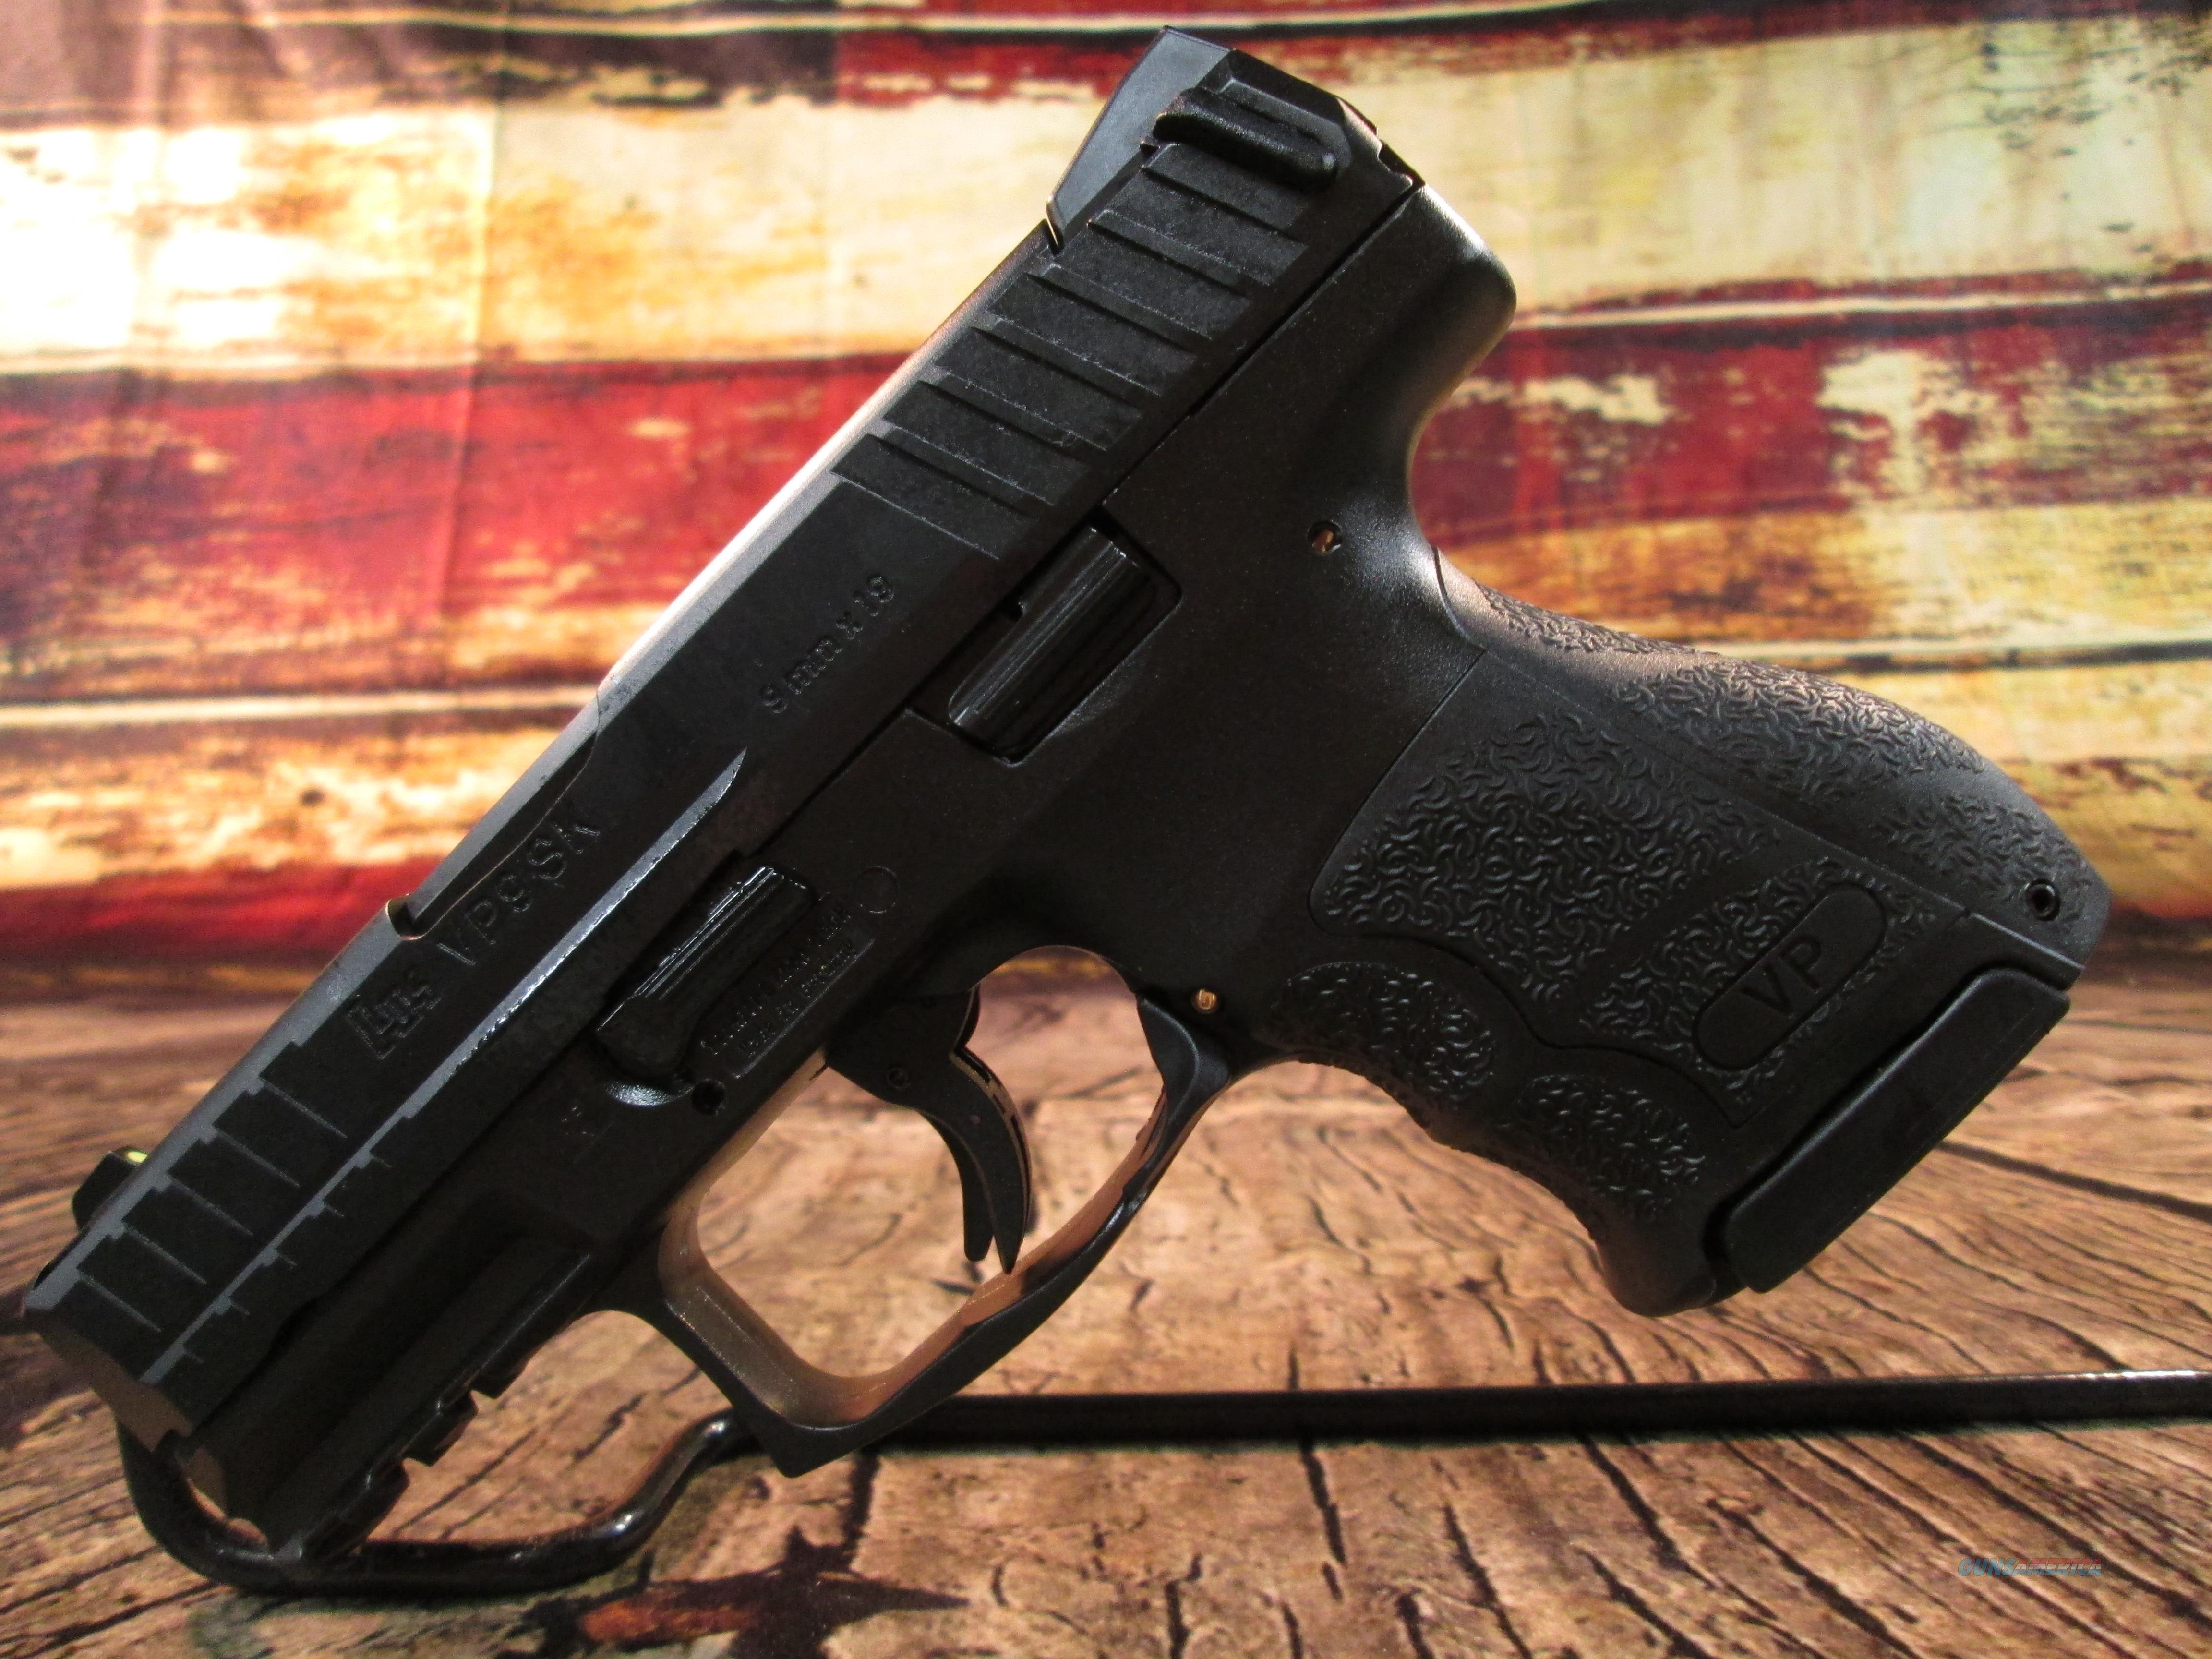 "HK VP9 SK STRIKER FIRED 3.9"" 9MM PISTOL NEW (700009K-A5)  Guns > Pistols > Heckler & Koch Pistols > Polymer Frame"